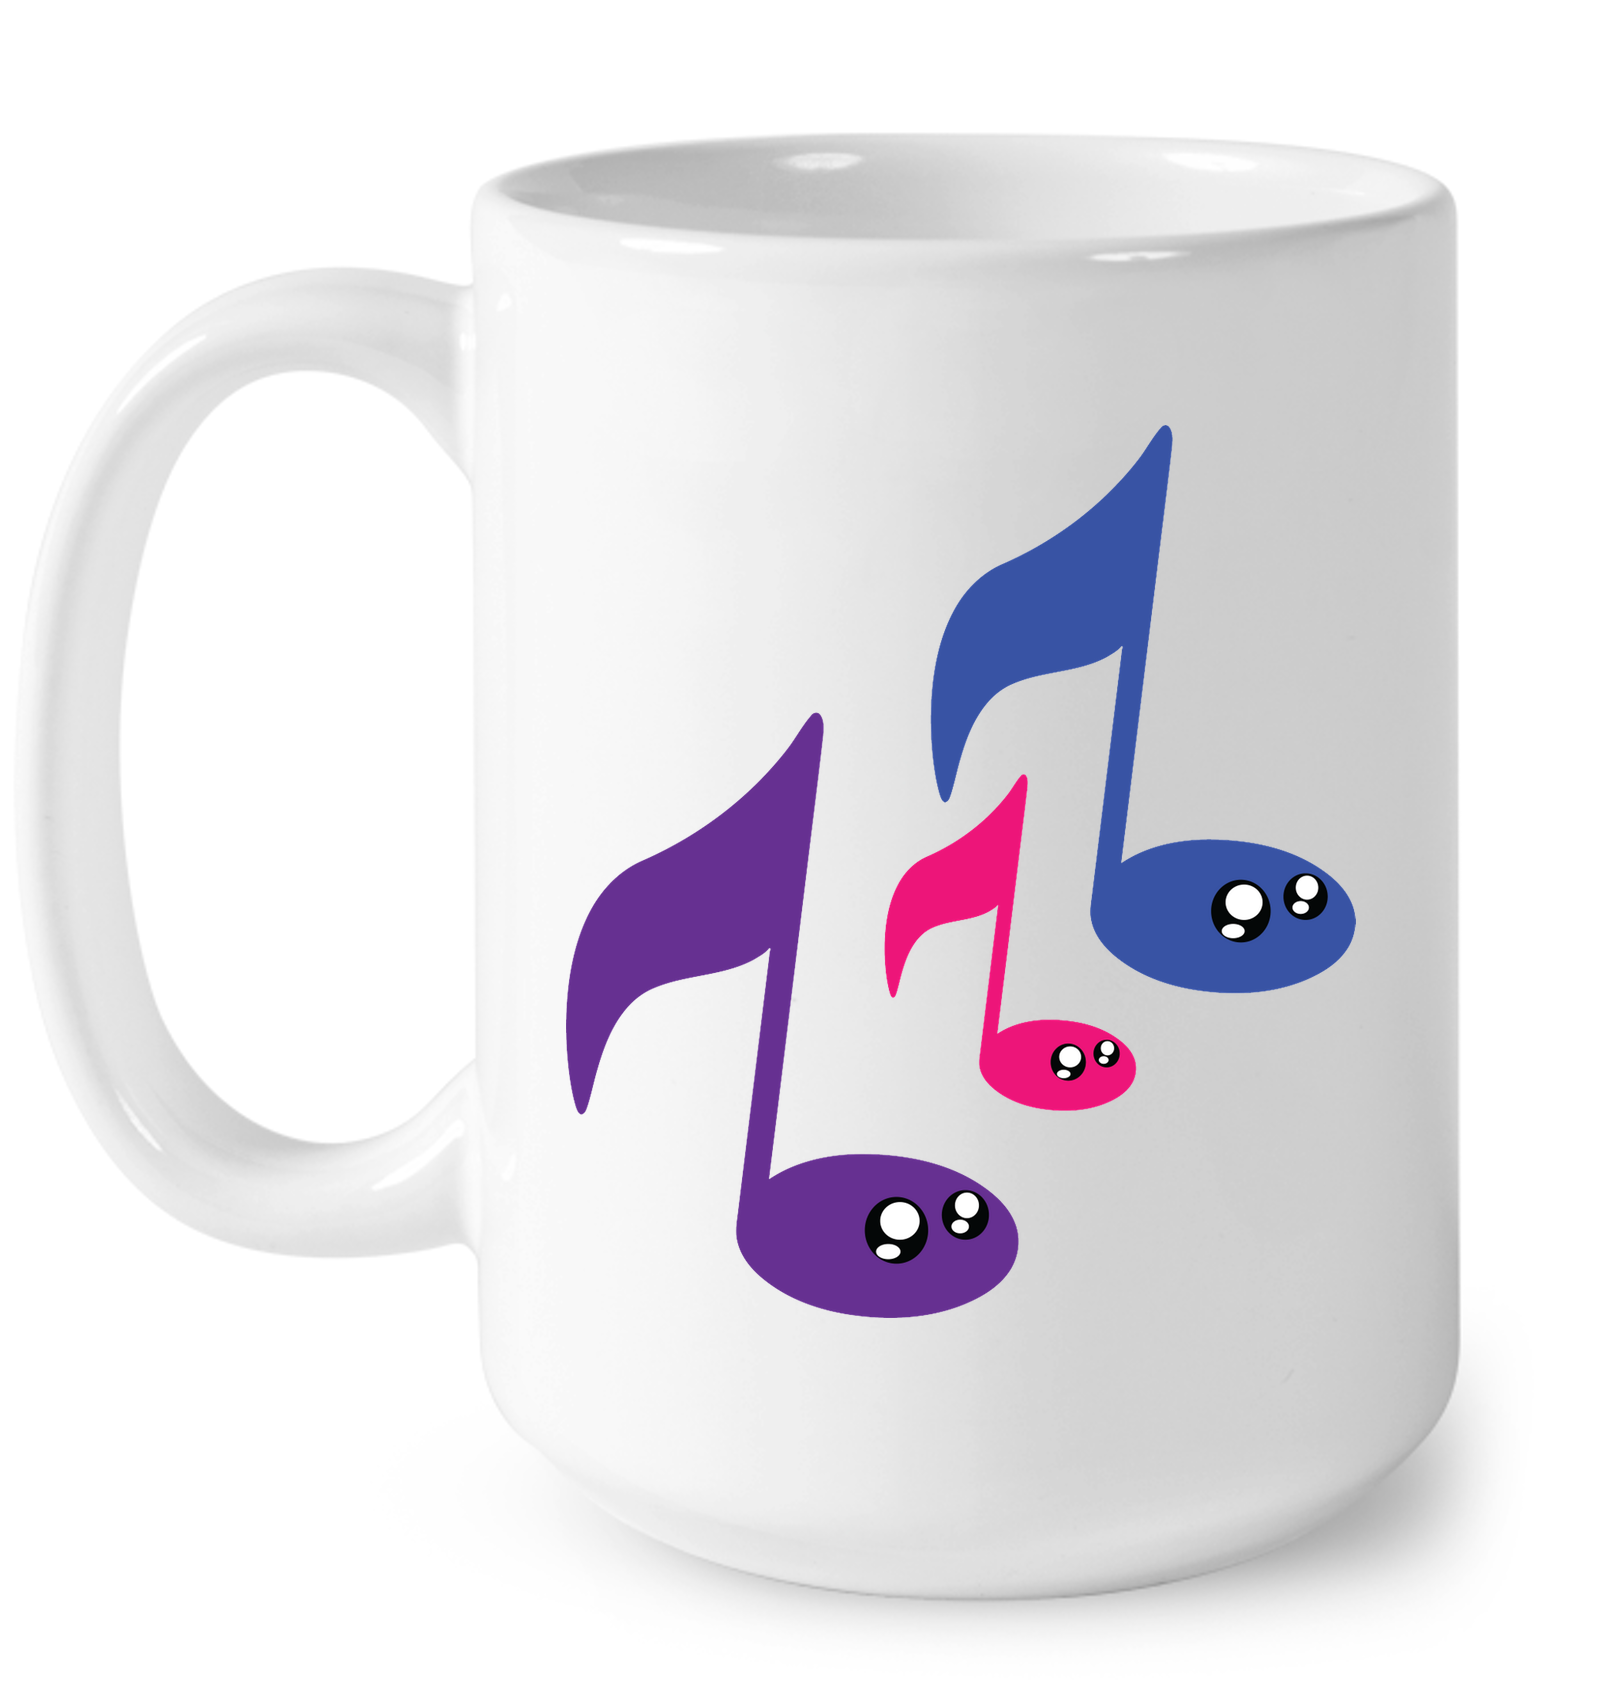 3 Note Friends - Ceramic Mug